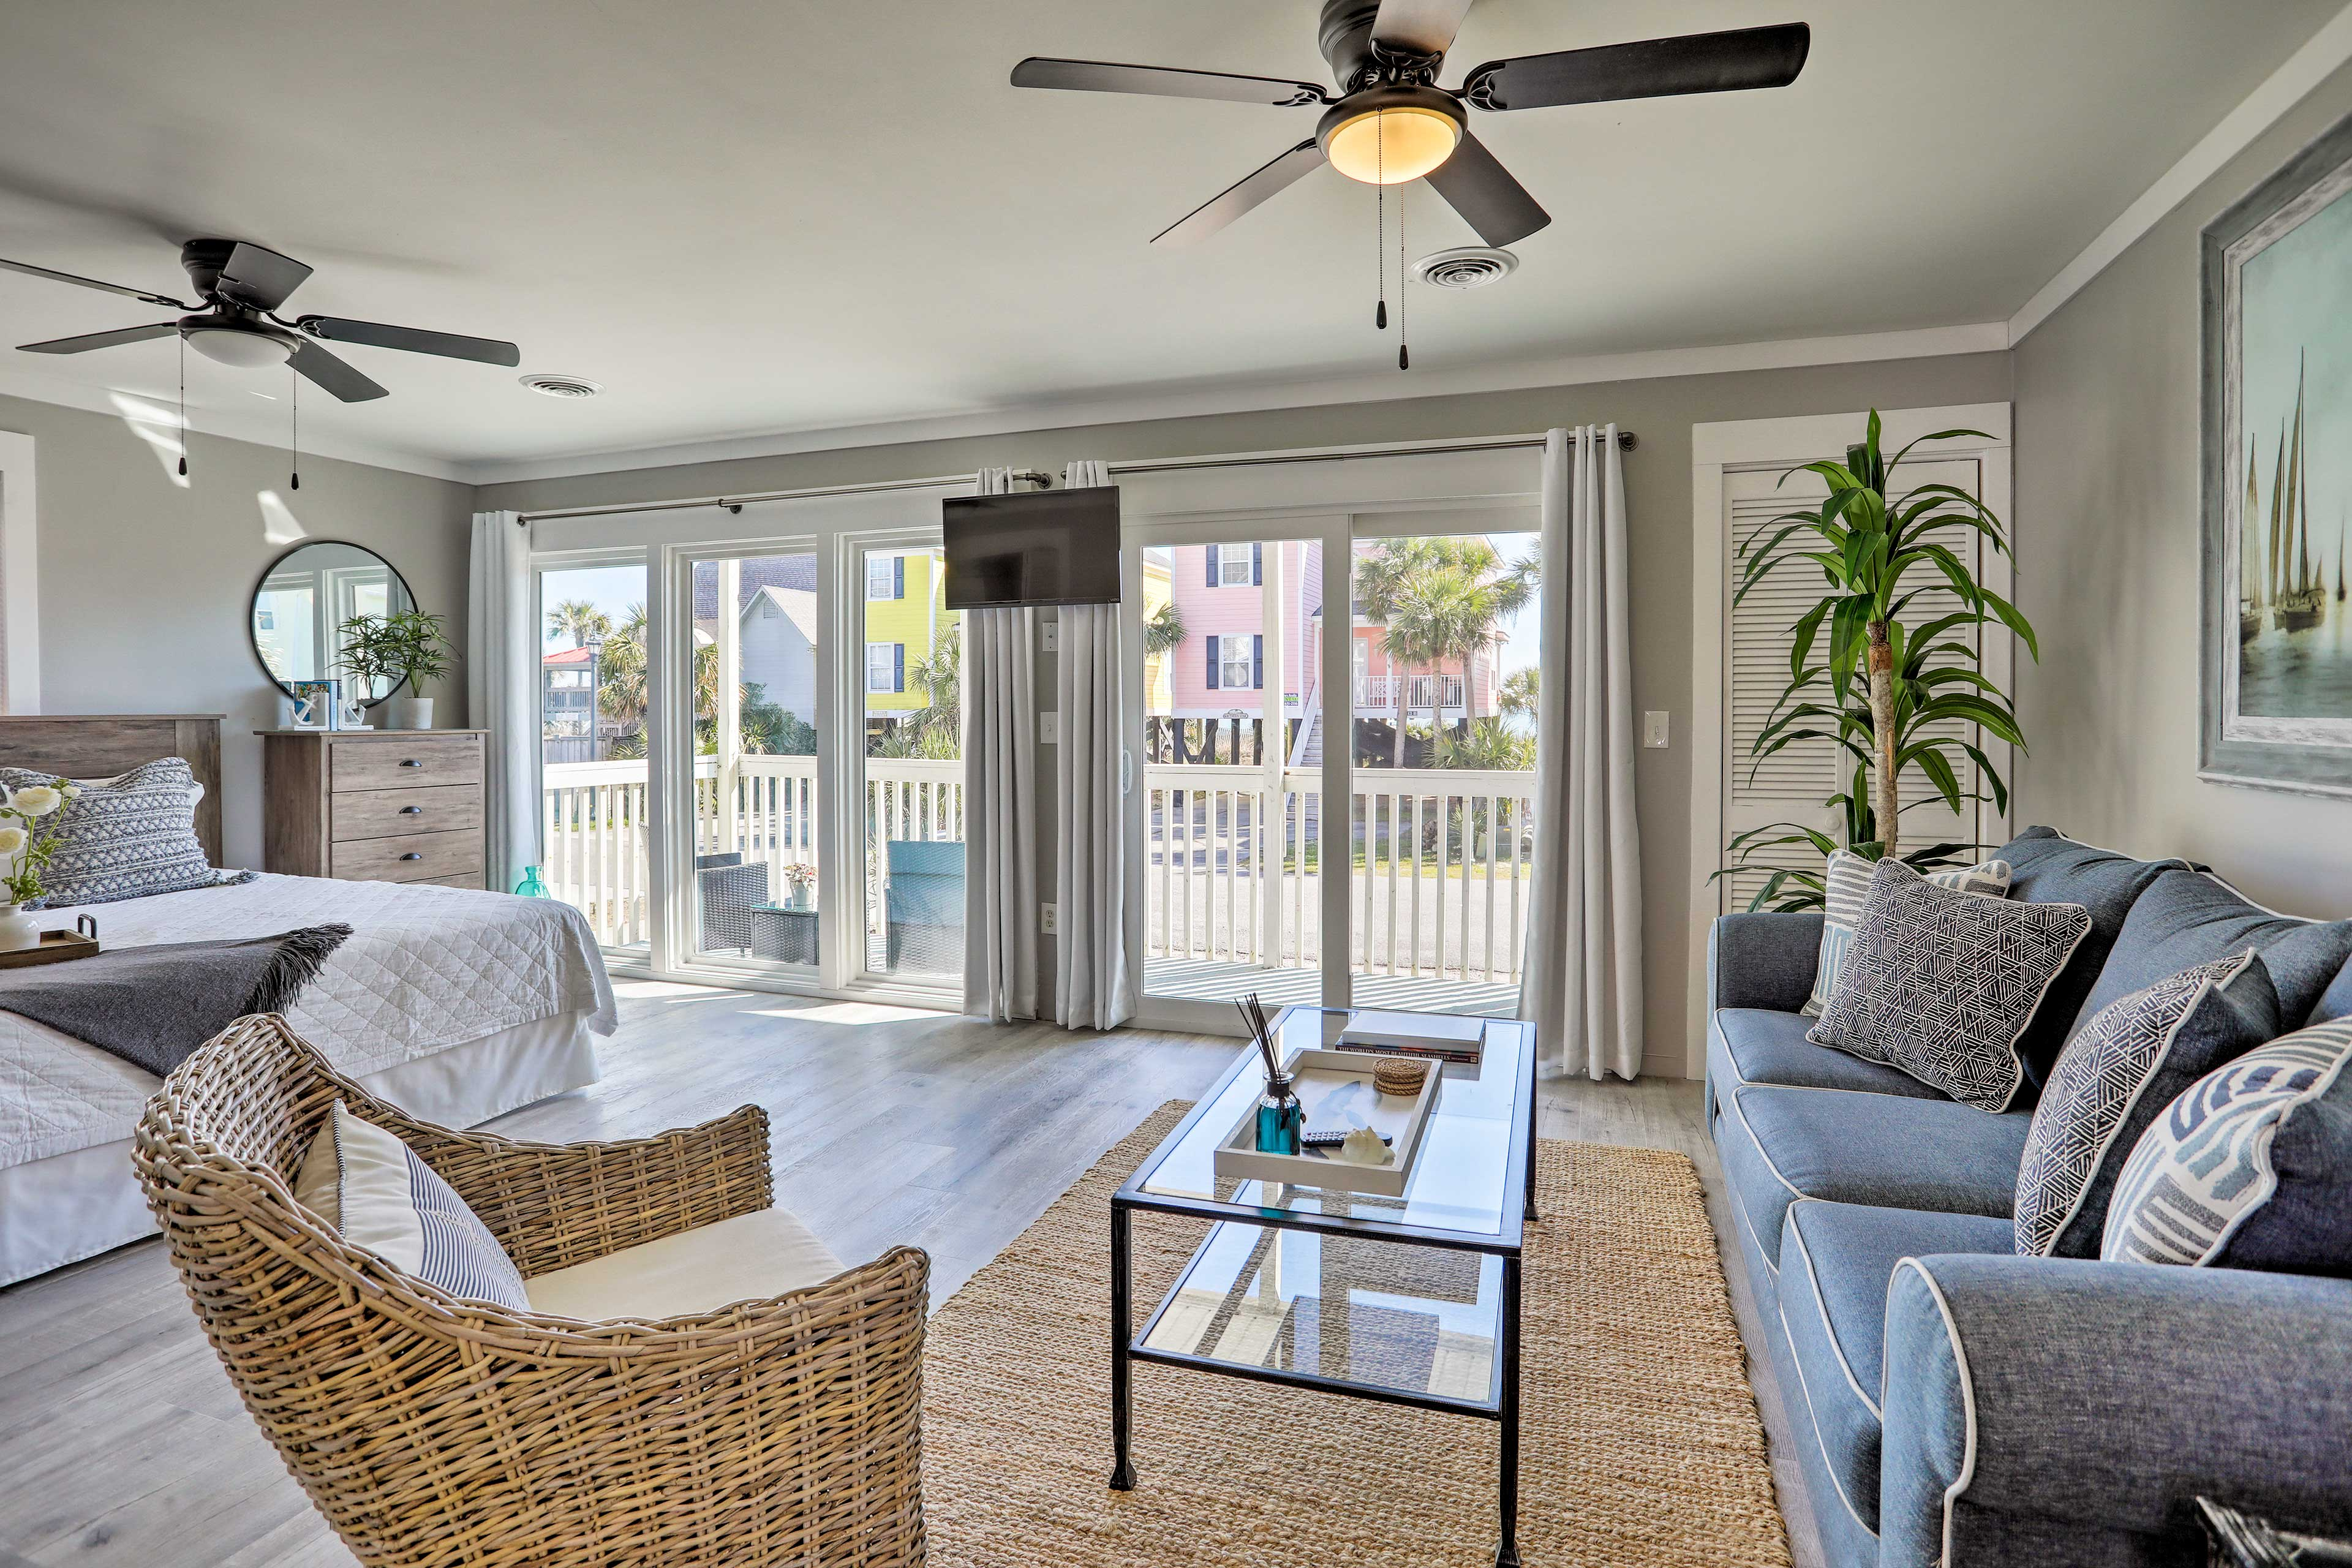 Make your way to Surfside Beach and stay at this studio condo!